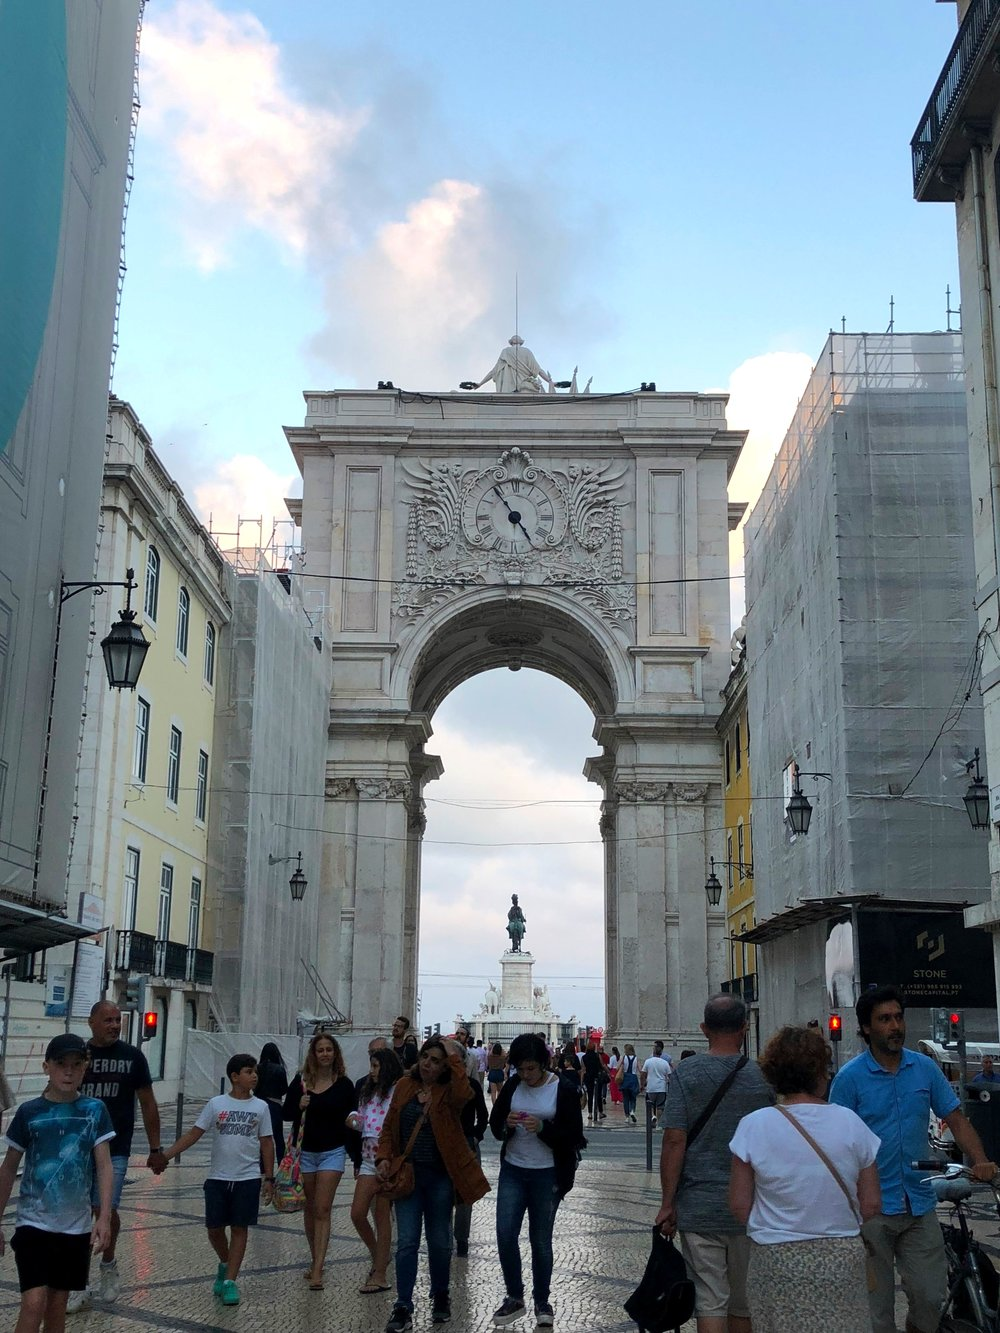 The arch at the entrance of Praça do Comércio